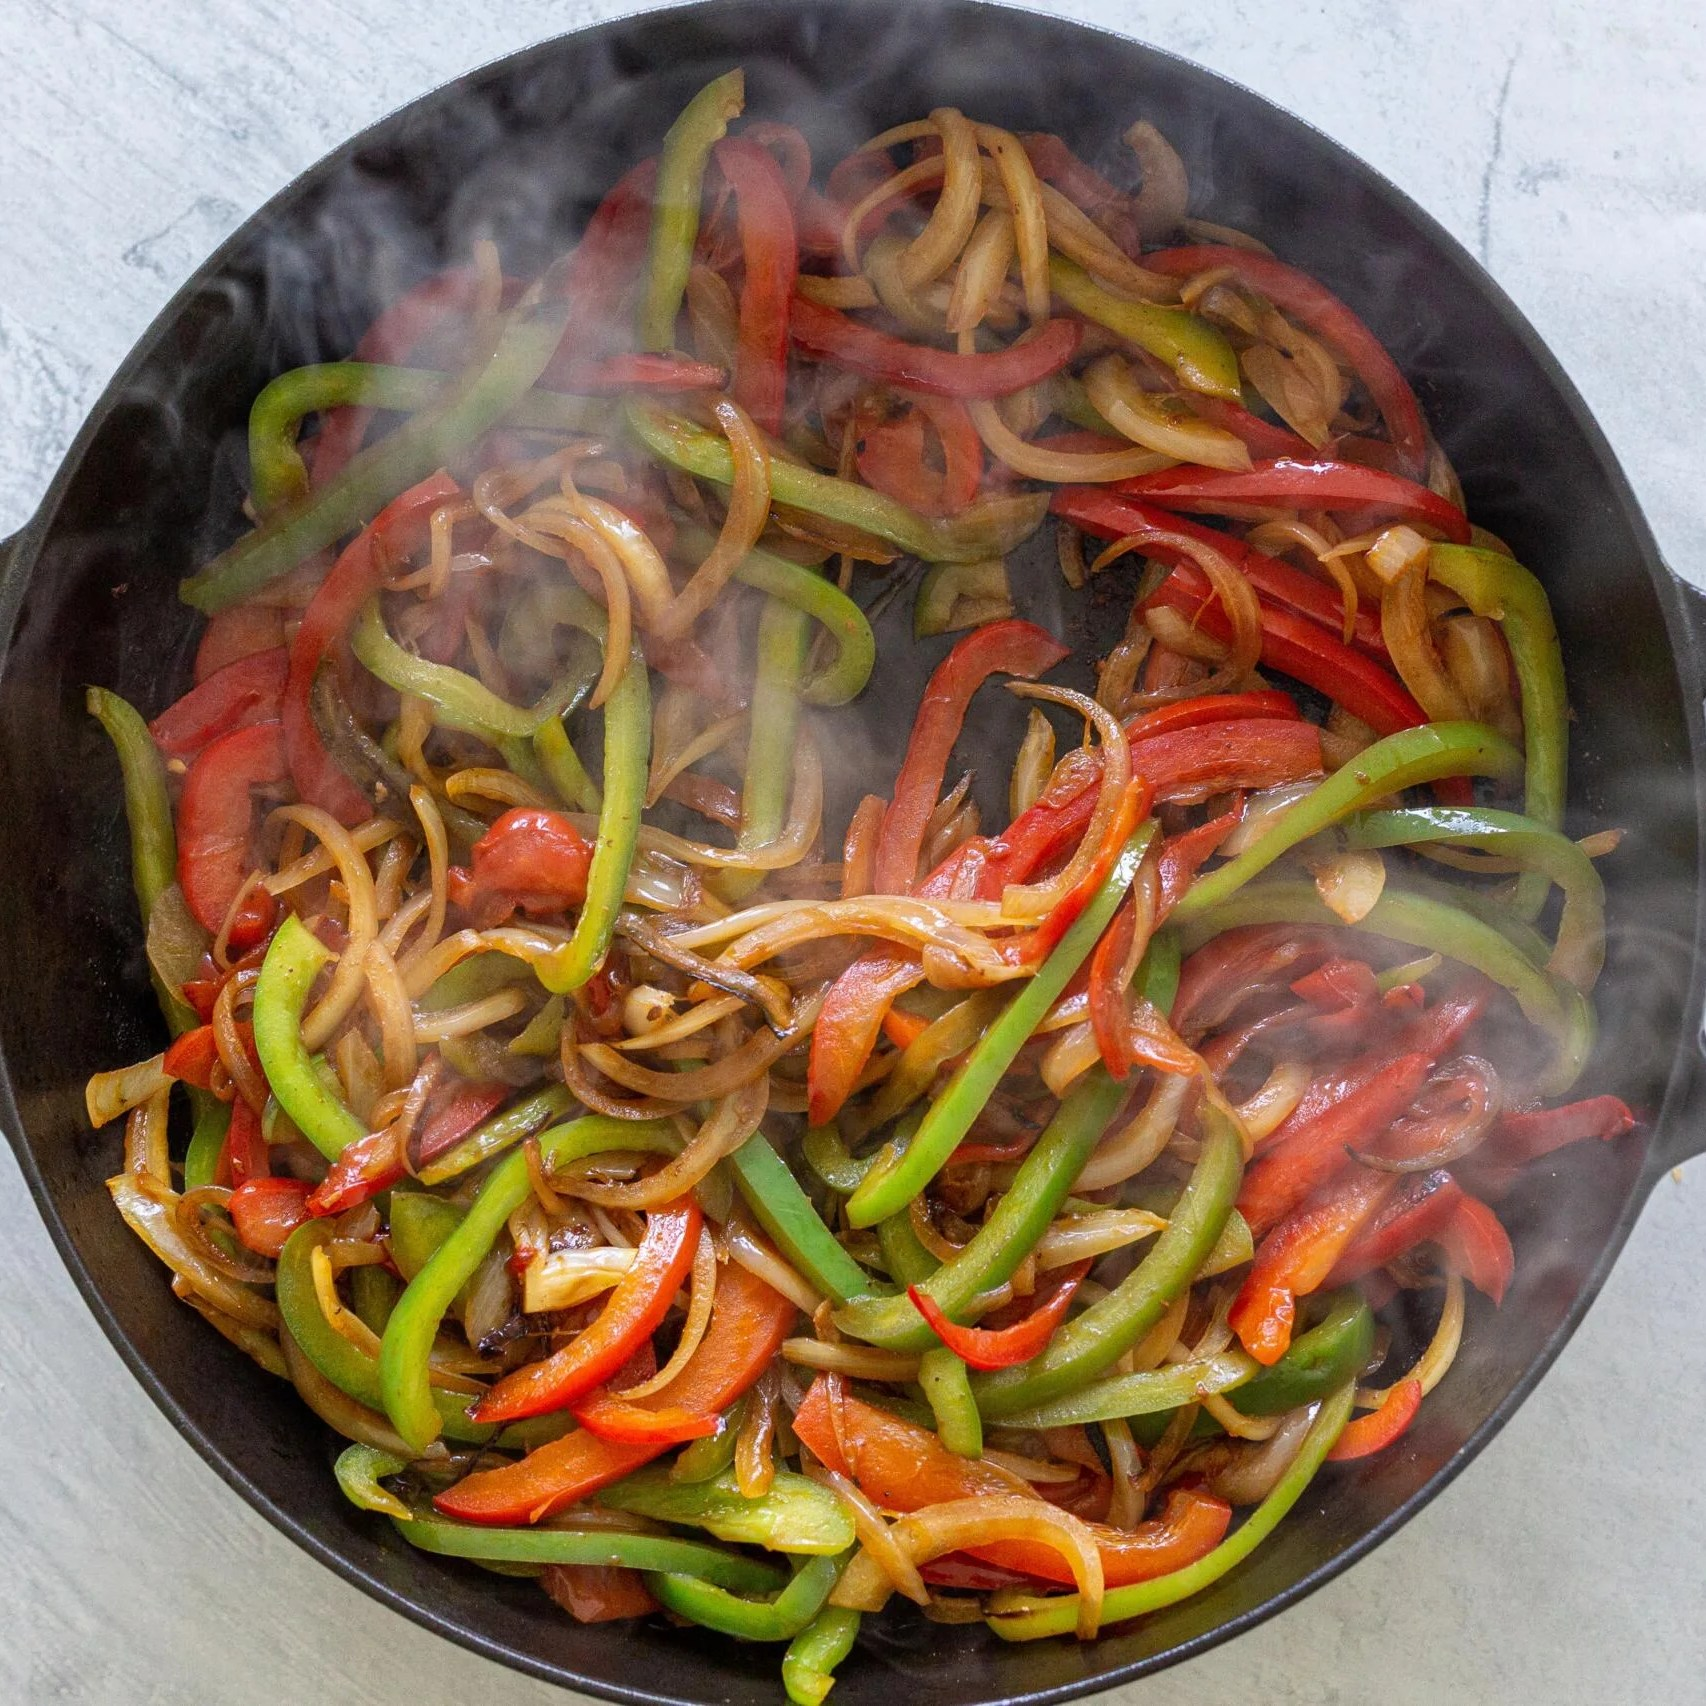 cooked veggies in a skillet